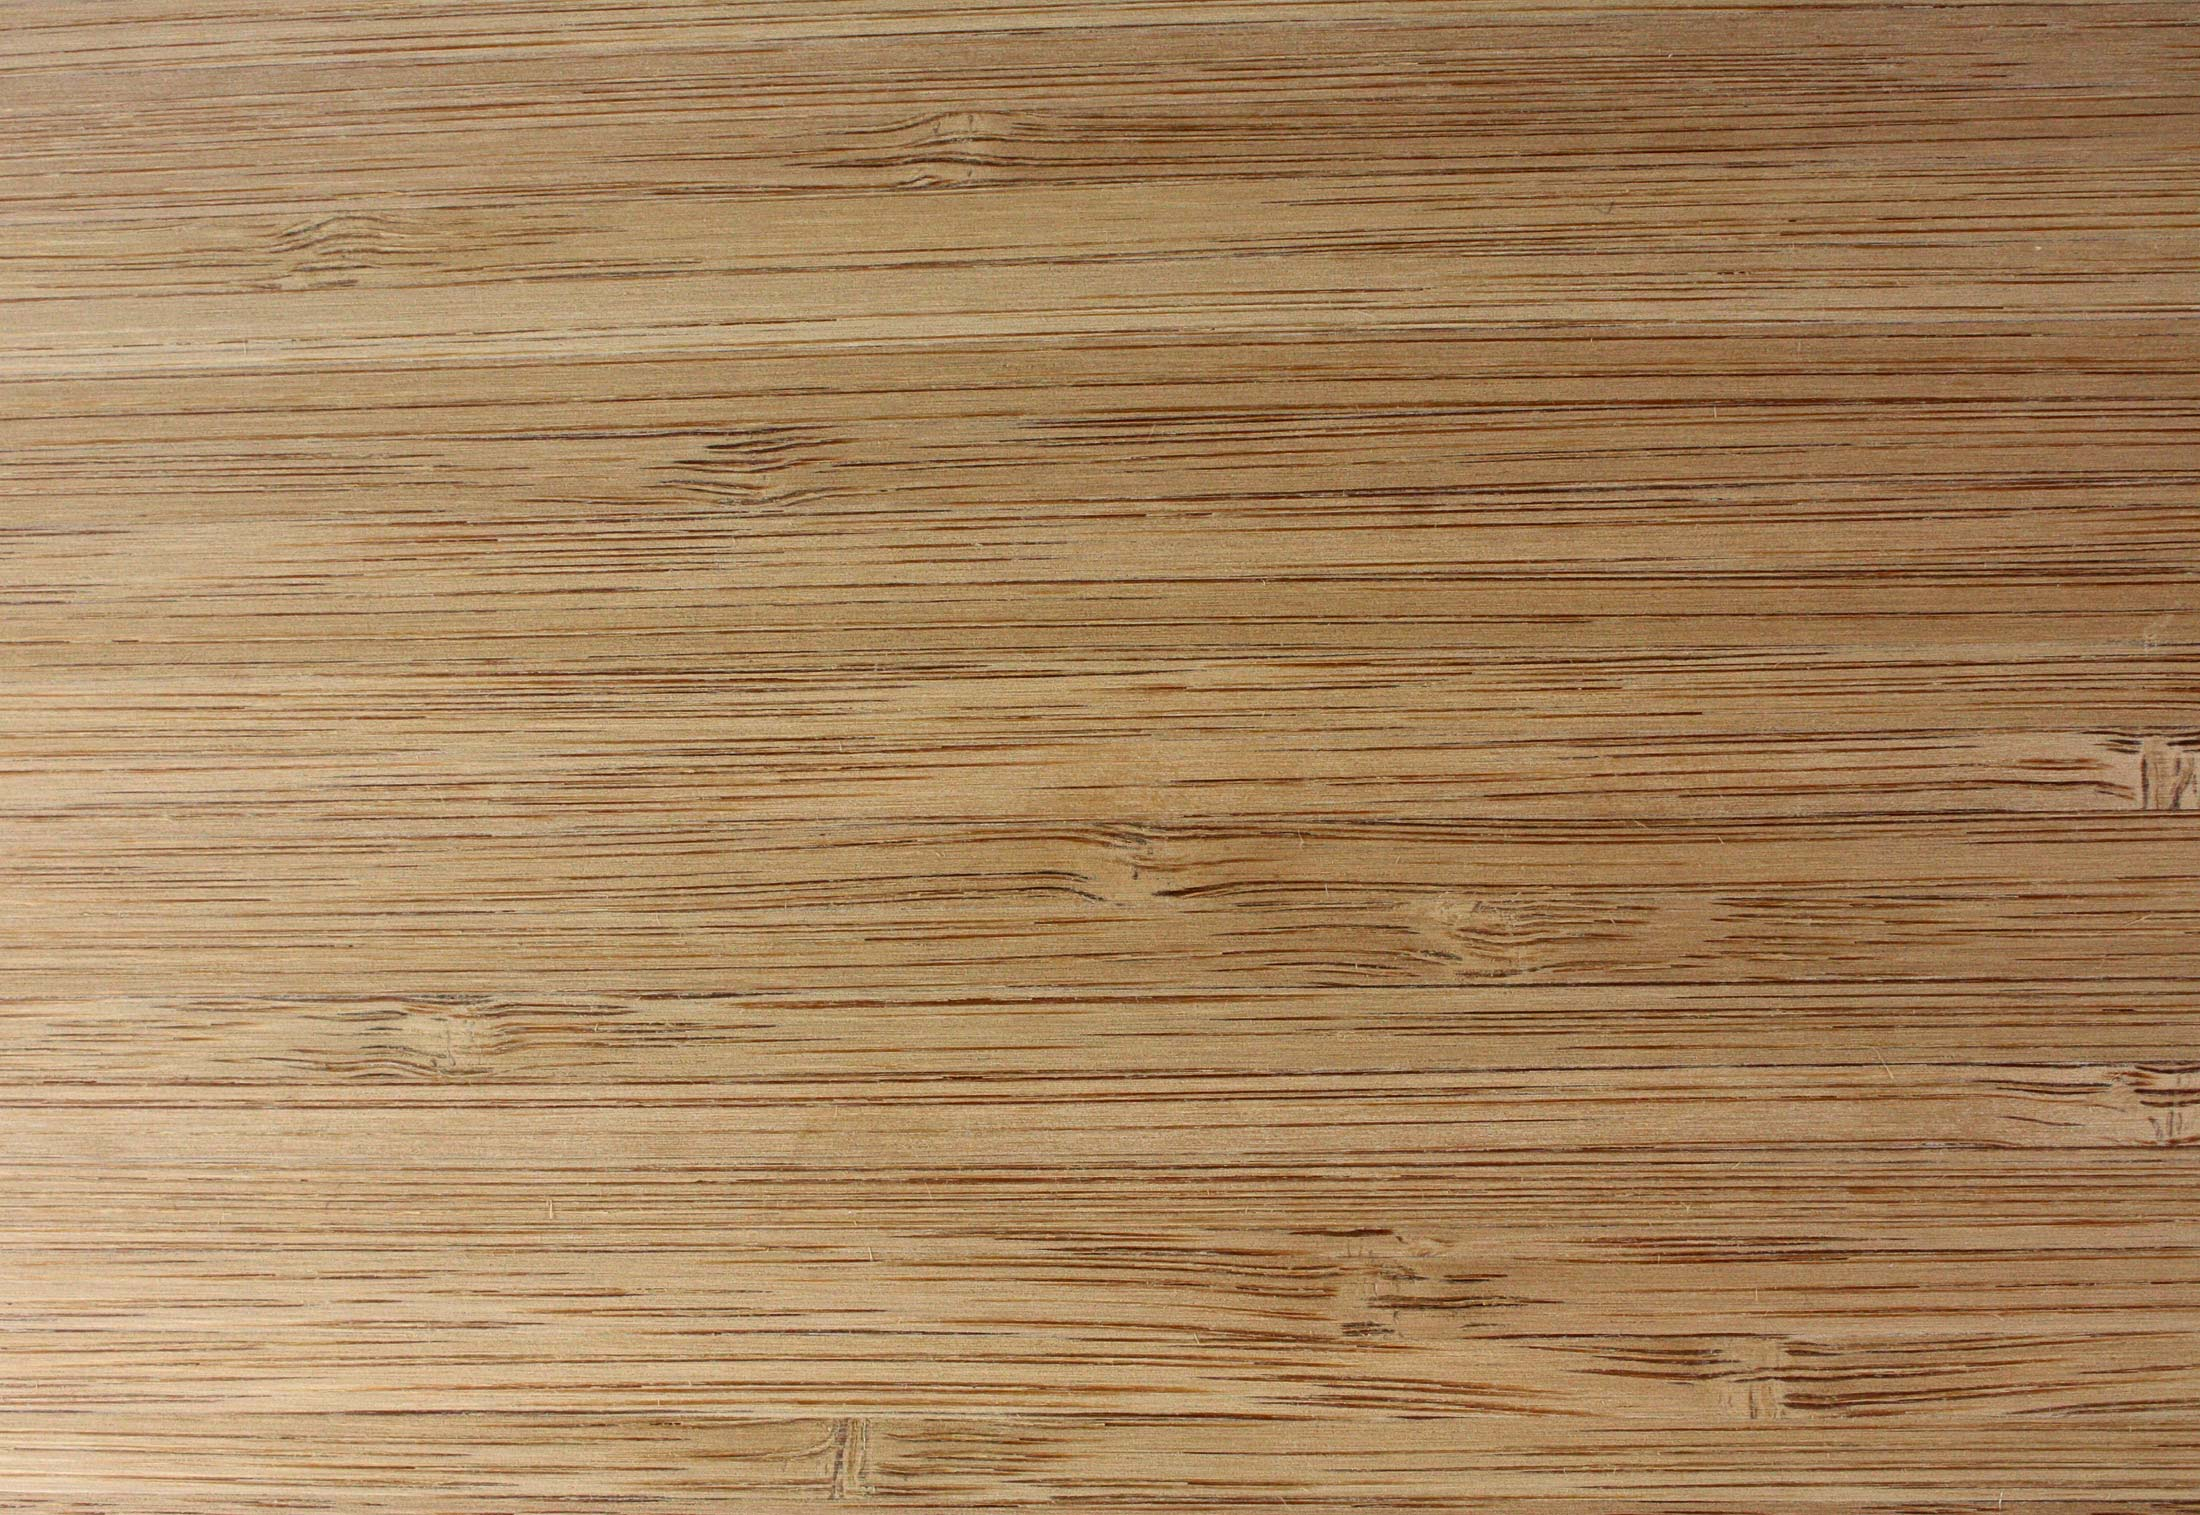 MOSO thick veneer bamboo panel by MOSO